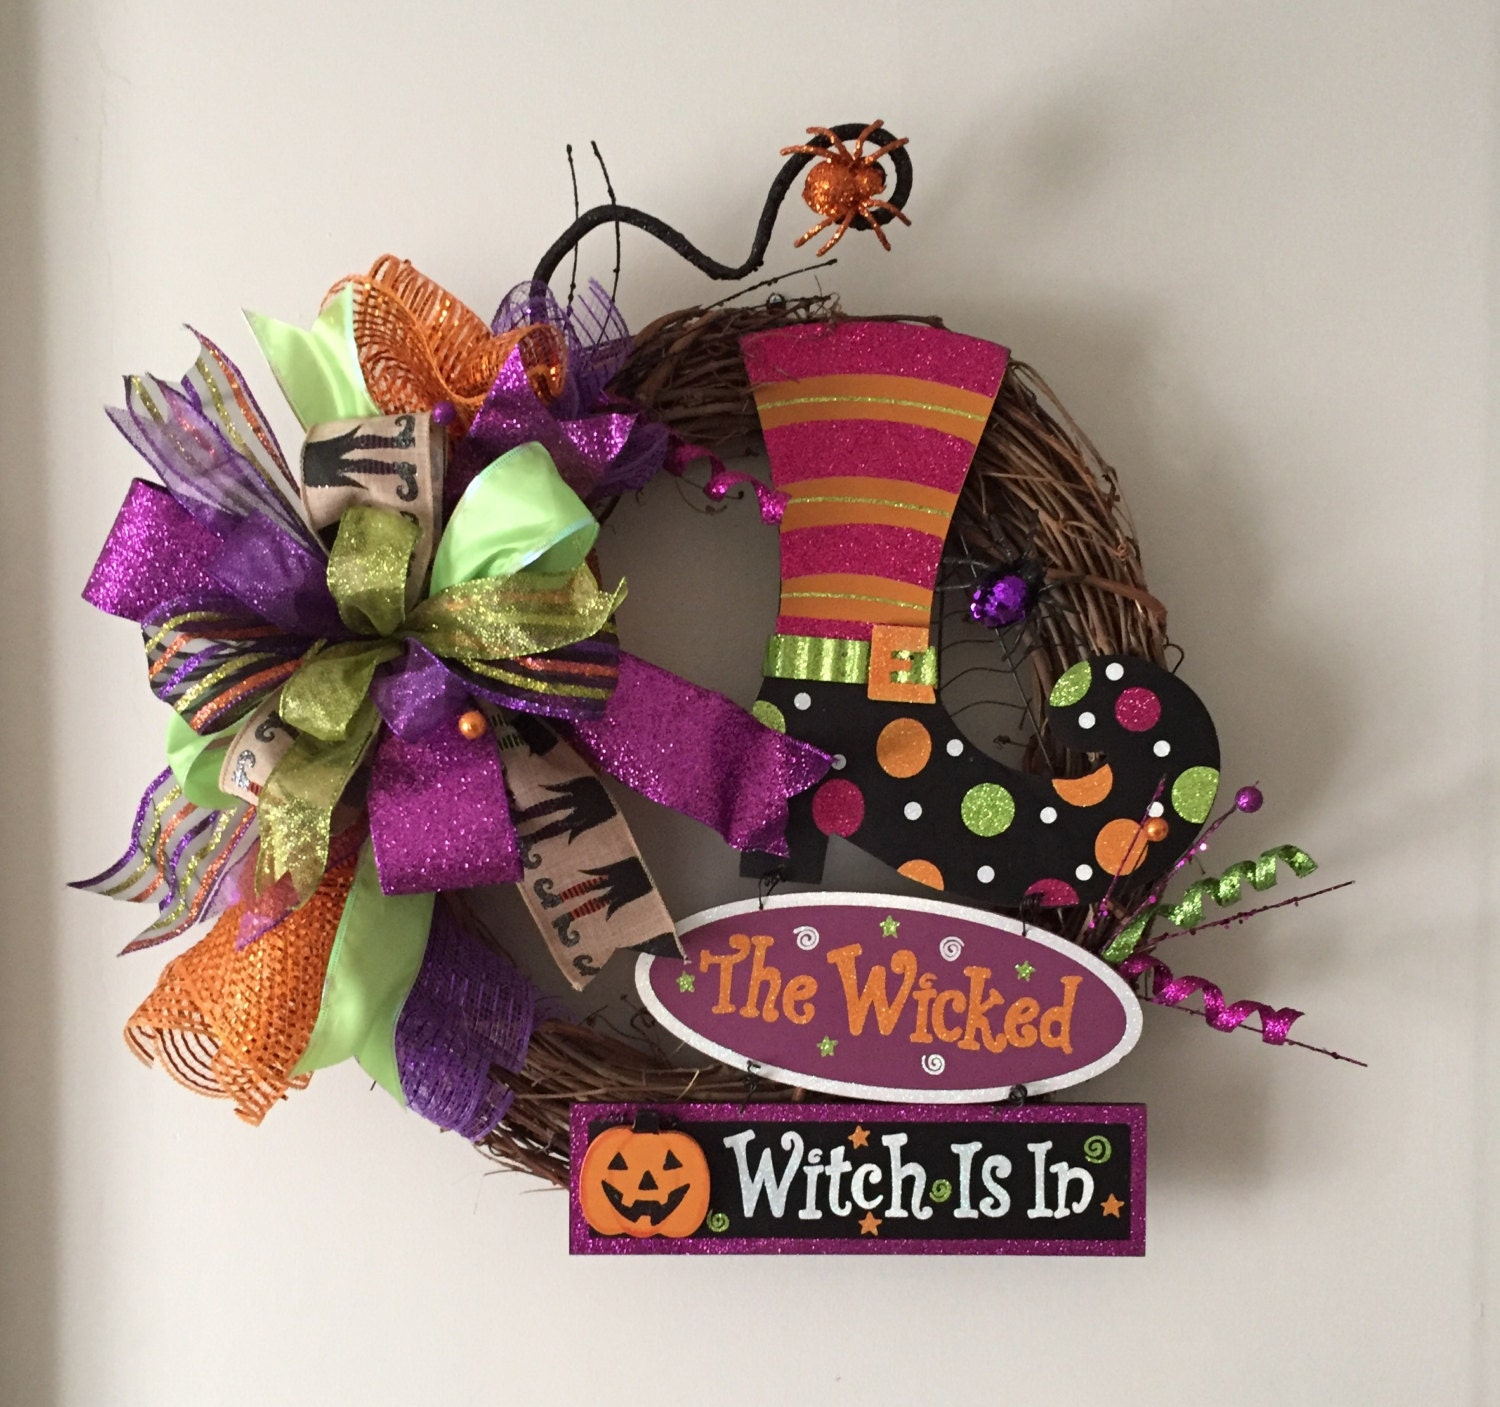 halloween gallery wall decor hallowen walljpg halloween halloween decorations halloween decor wall decor wreath front door wreath halloween wreath door wreath